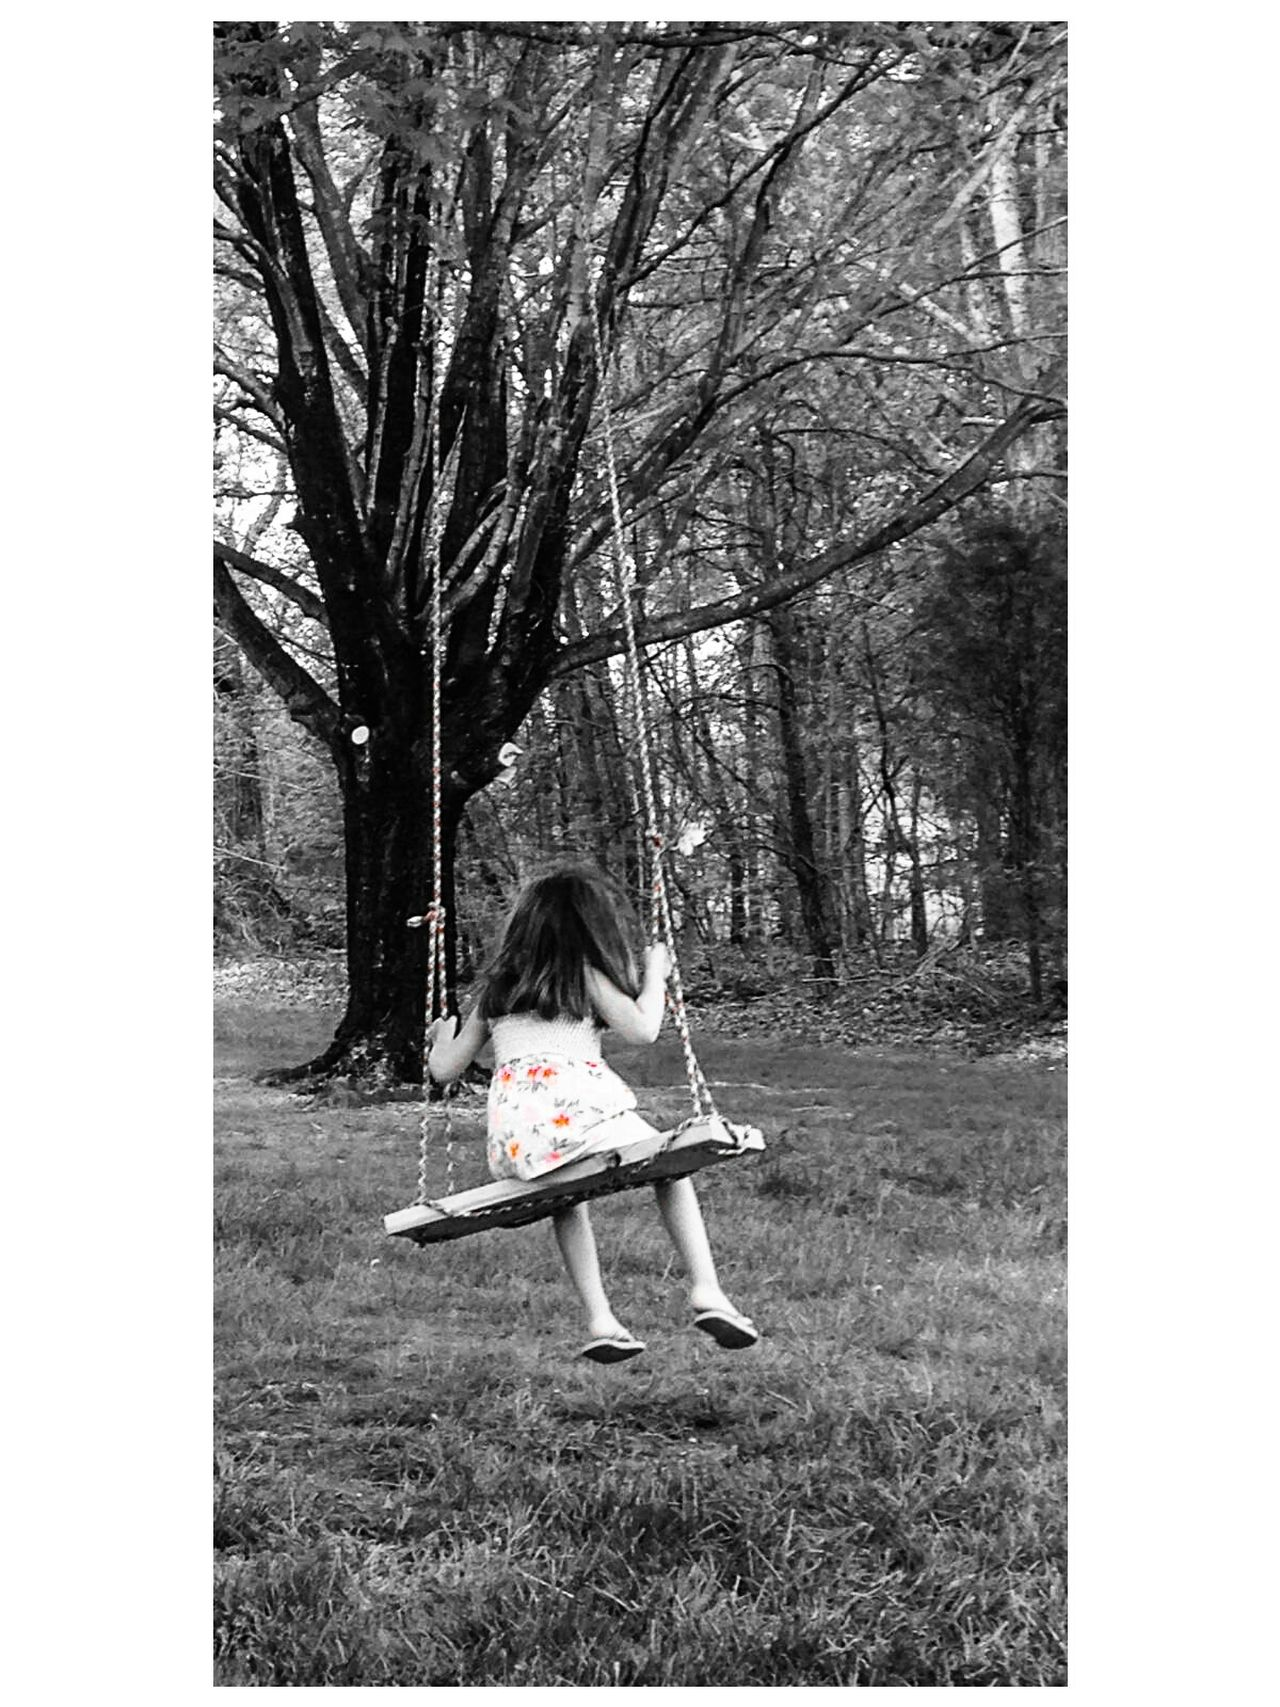 Childhood Child Childhood Memories Swing Rope Swing Mostly Black And White Room To Grow